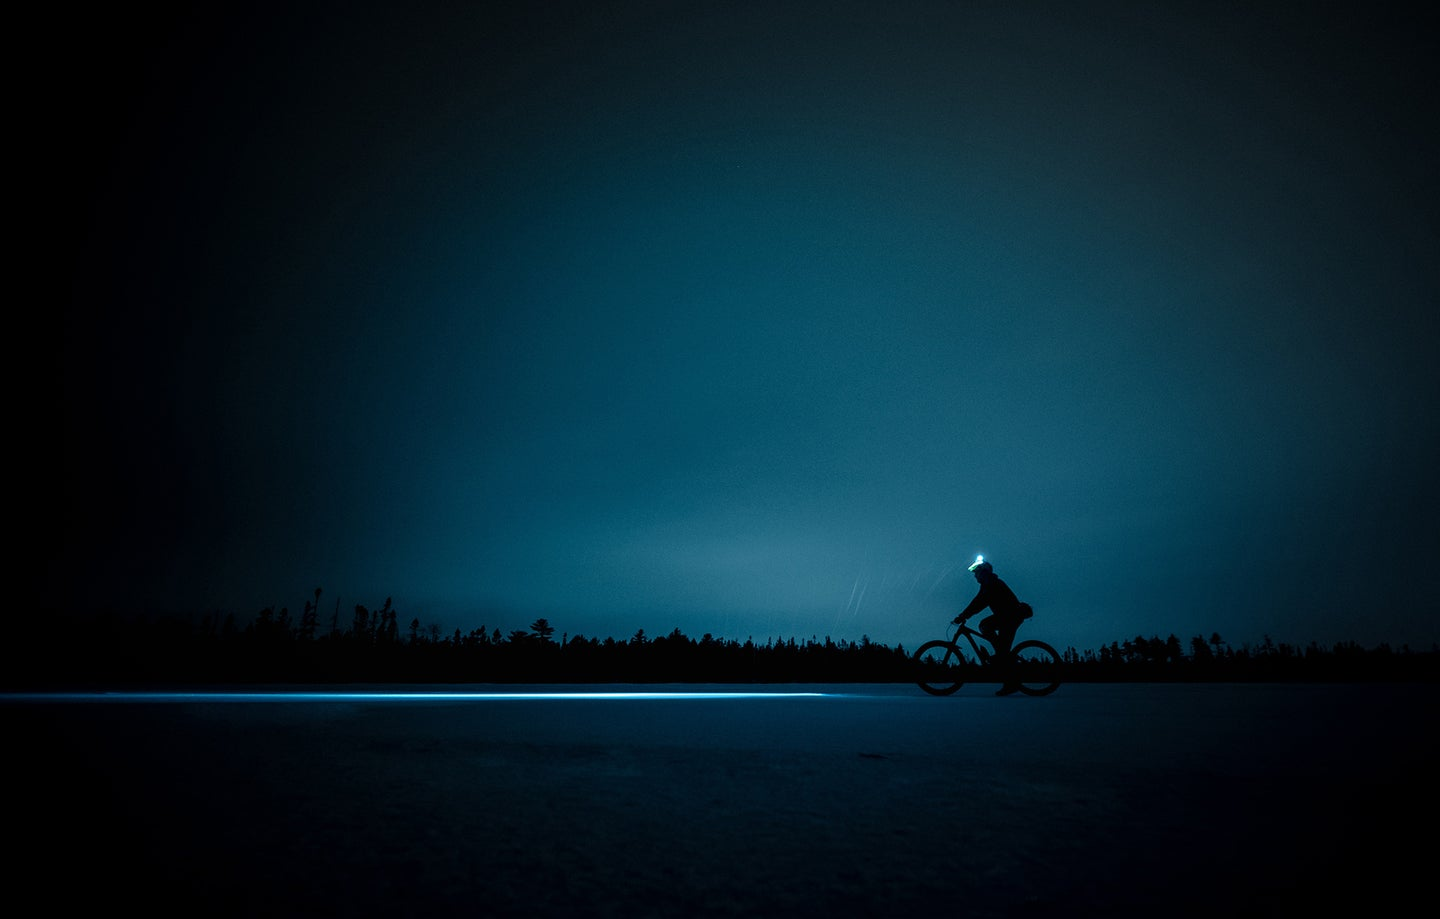 person on a bike with a headlamp